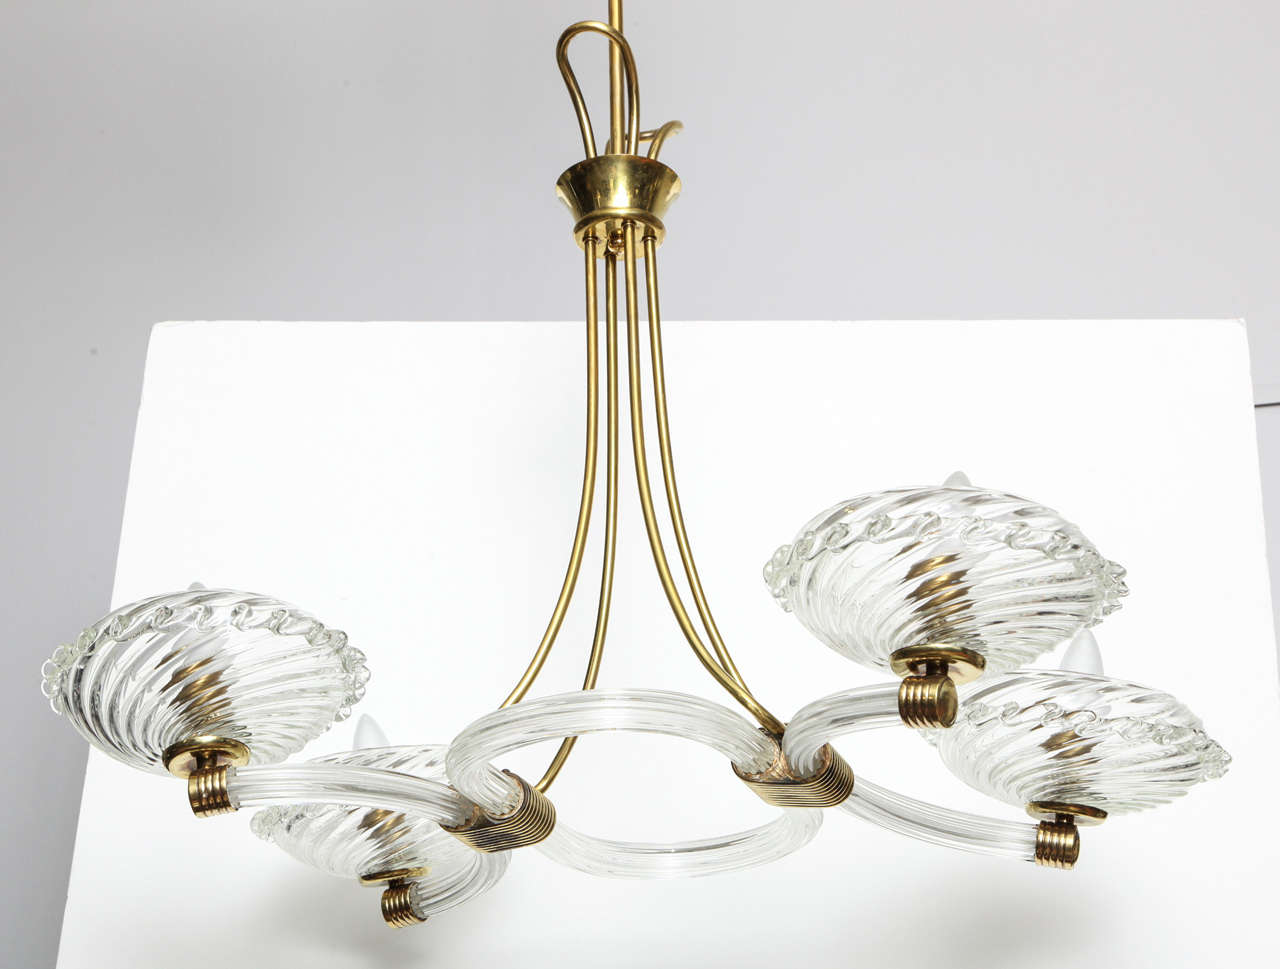 Art Deco Murano chandelier with fluted glass bowls.